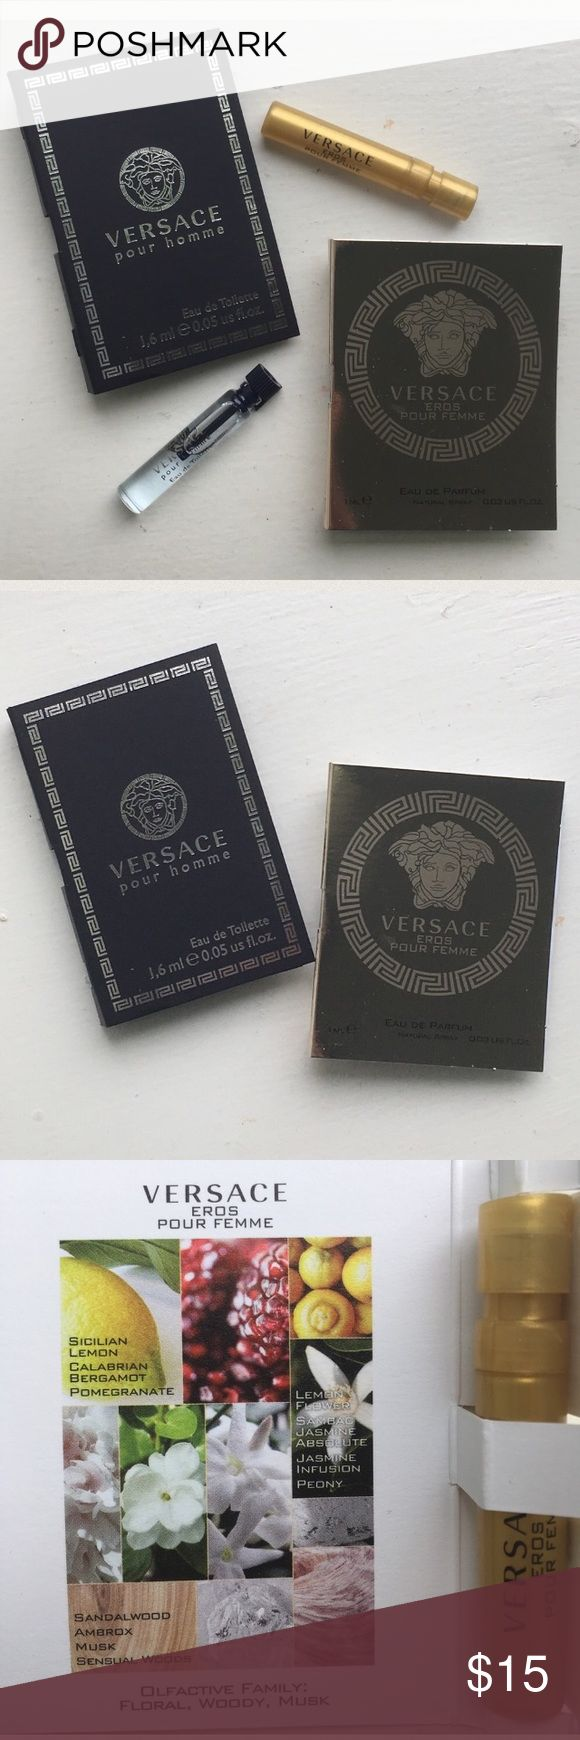 🆕🤴🏻👸🏻NEW🤴🏻👸🏻Versace His+Hers 2Pc Travel 🆕🤴🏻👸🏻NEW🤴🏻👸🏻Versace His+Hers 2Pc Travel Sz Set. Versace Pour Homme for Him. Versace Eros Pour Femme for Her. Both Are Atomizers. His 0.05oz Her 0.03oz. BRAND NEW! UNTOUCHED! 🚫Trades Versace Other